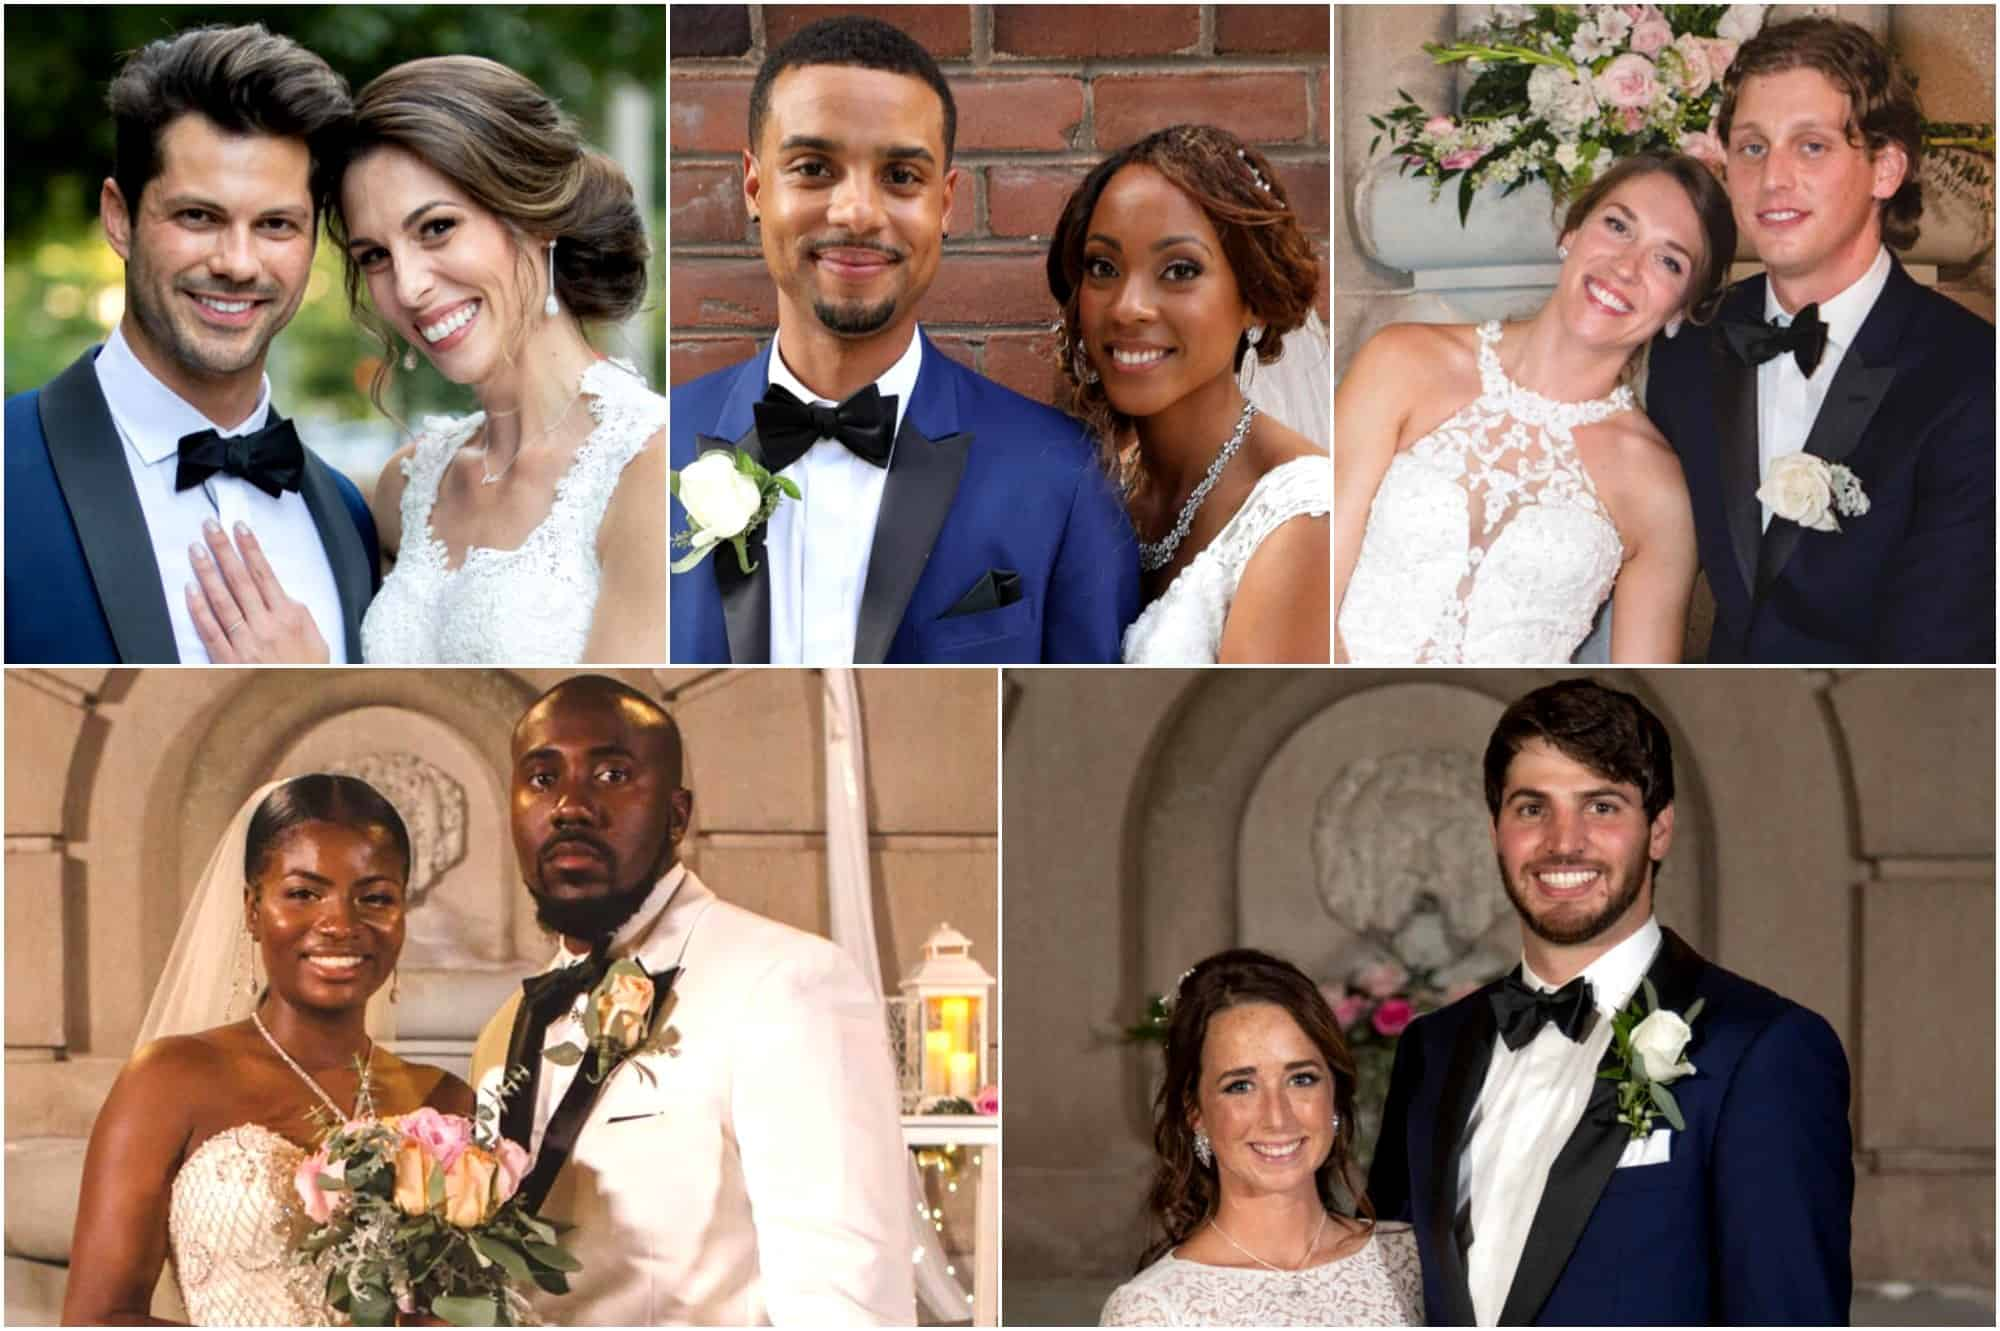 Married At First Sight Season 10 Couples Update: Where Are They Now? Find Out Who Is Still Together